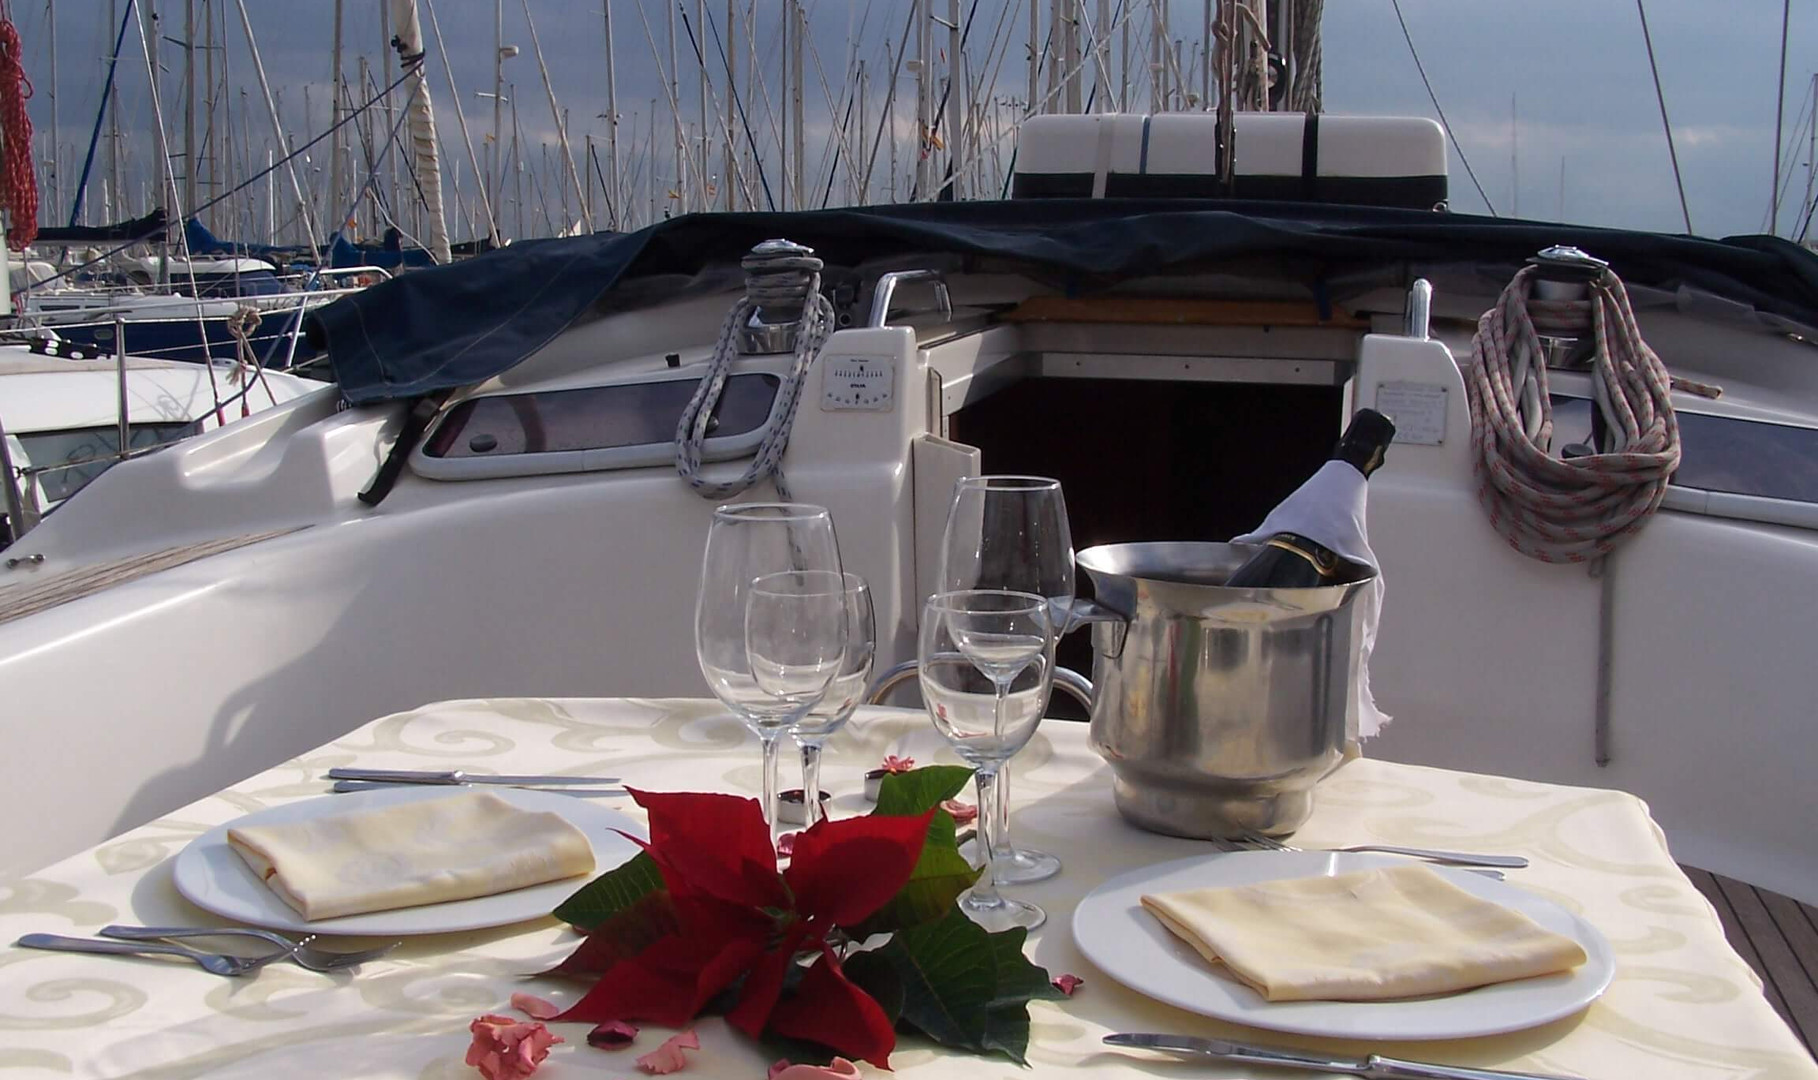 Lunch or dinner on boat